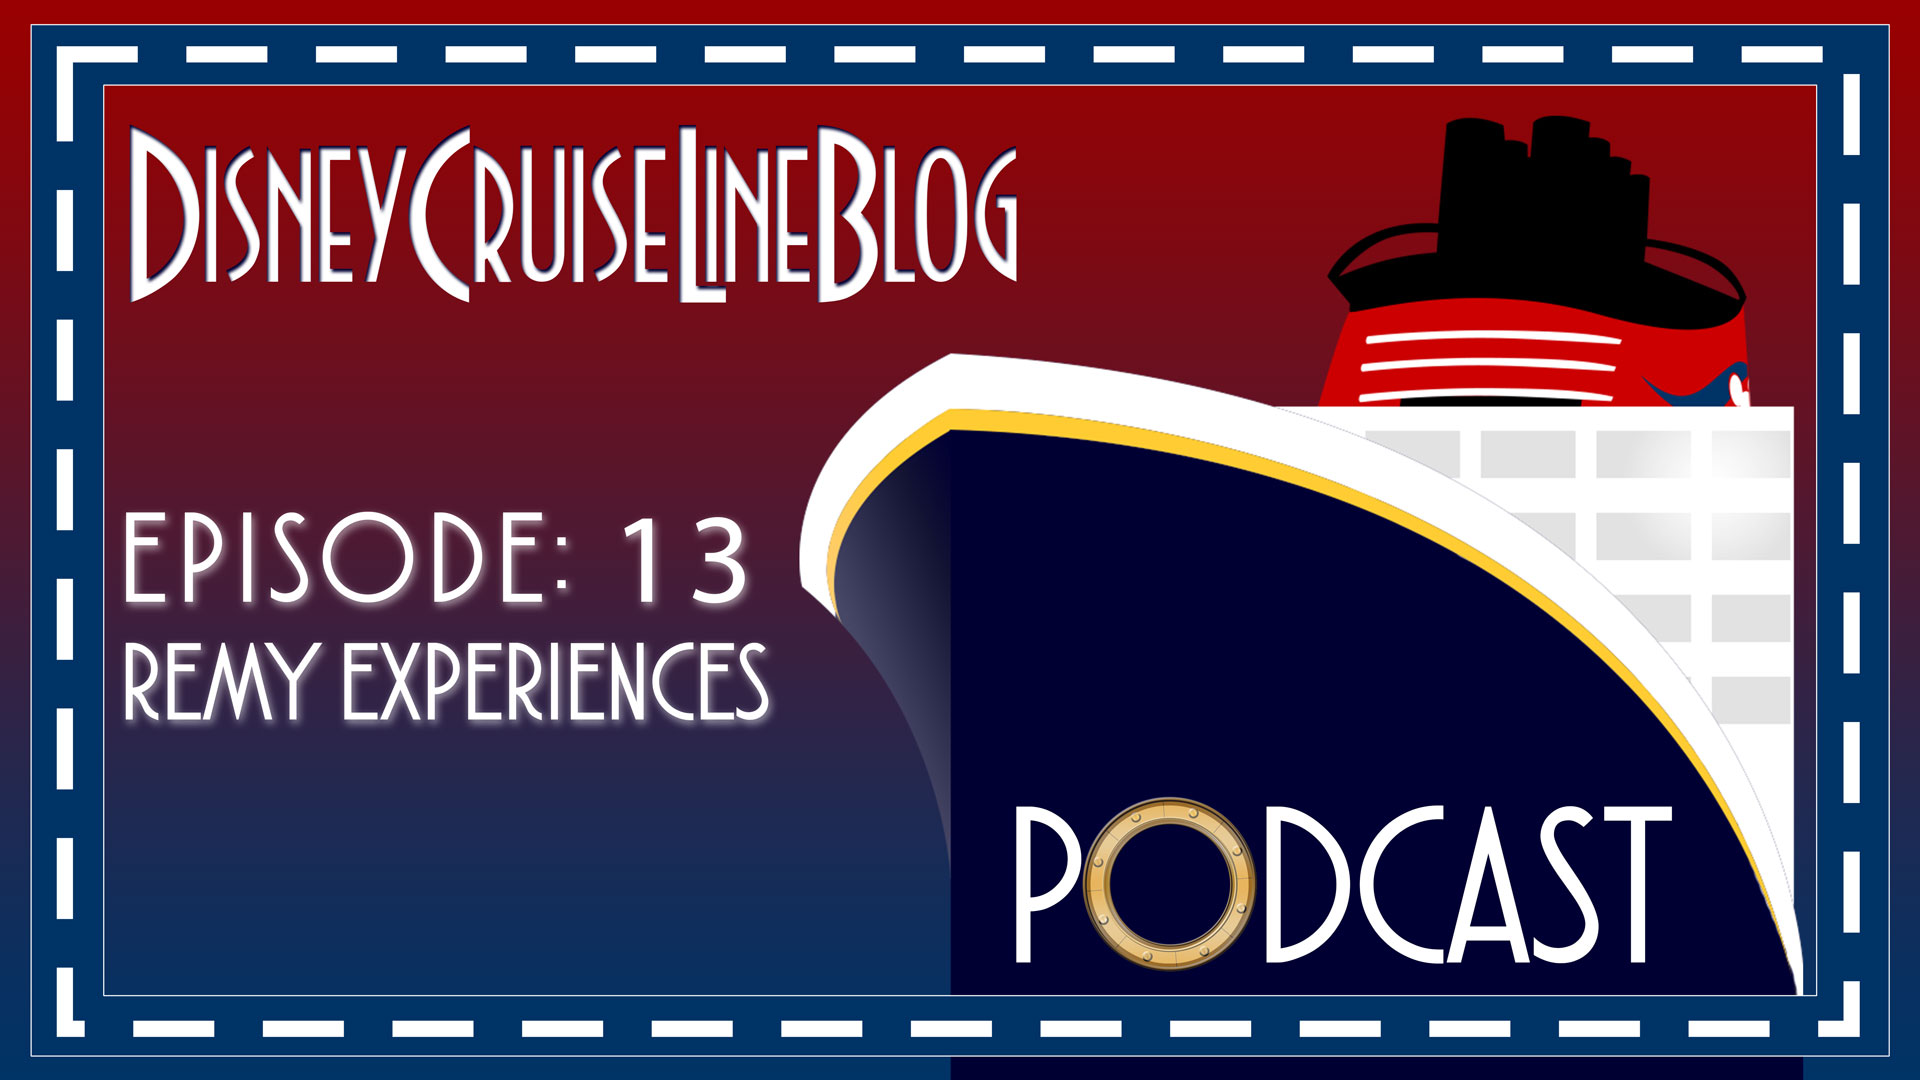 DCL Blog Podcast Episode 13 Remy Experiences